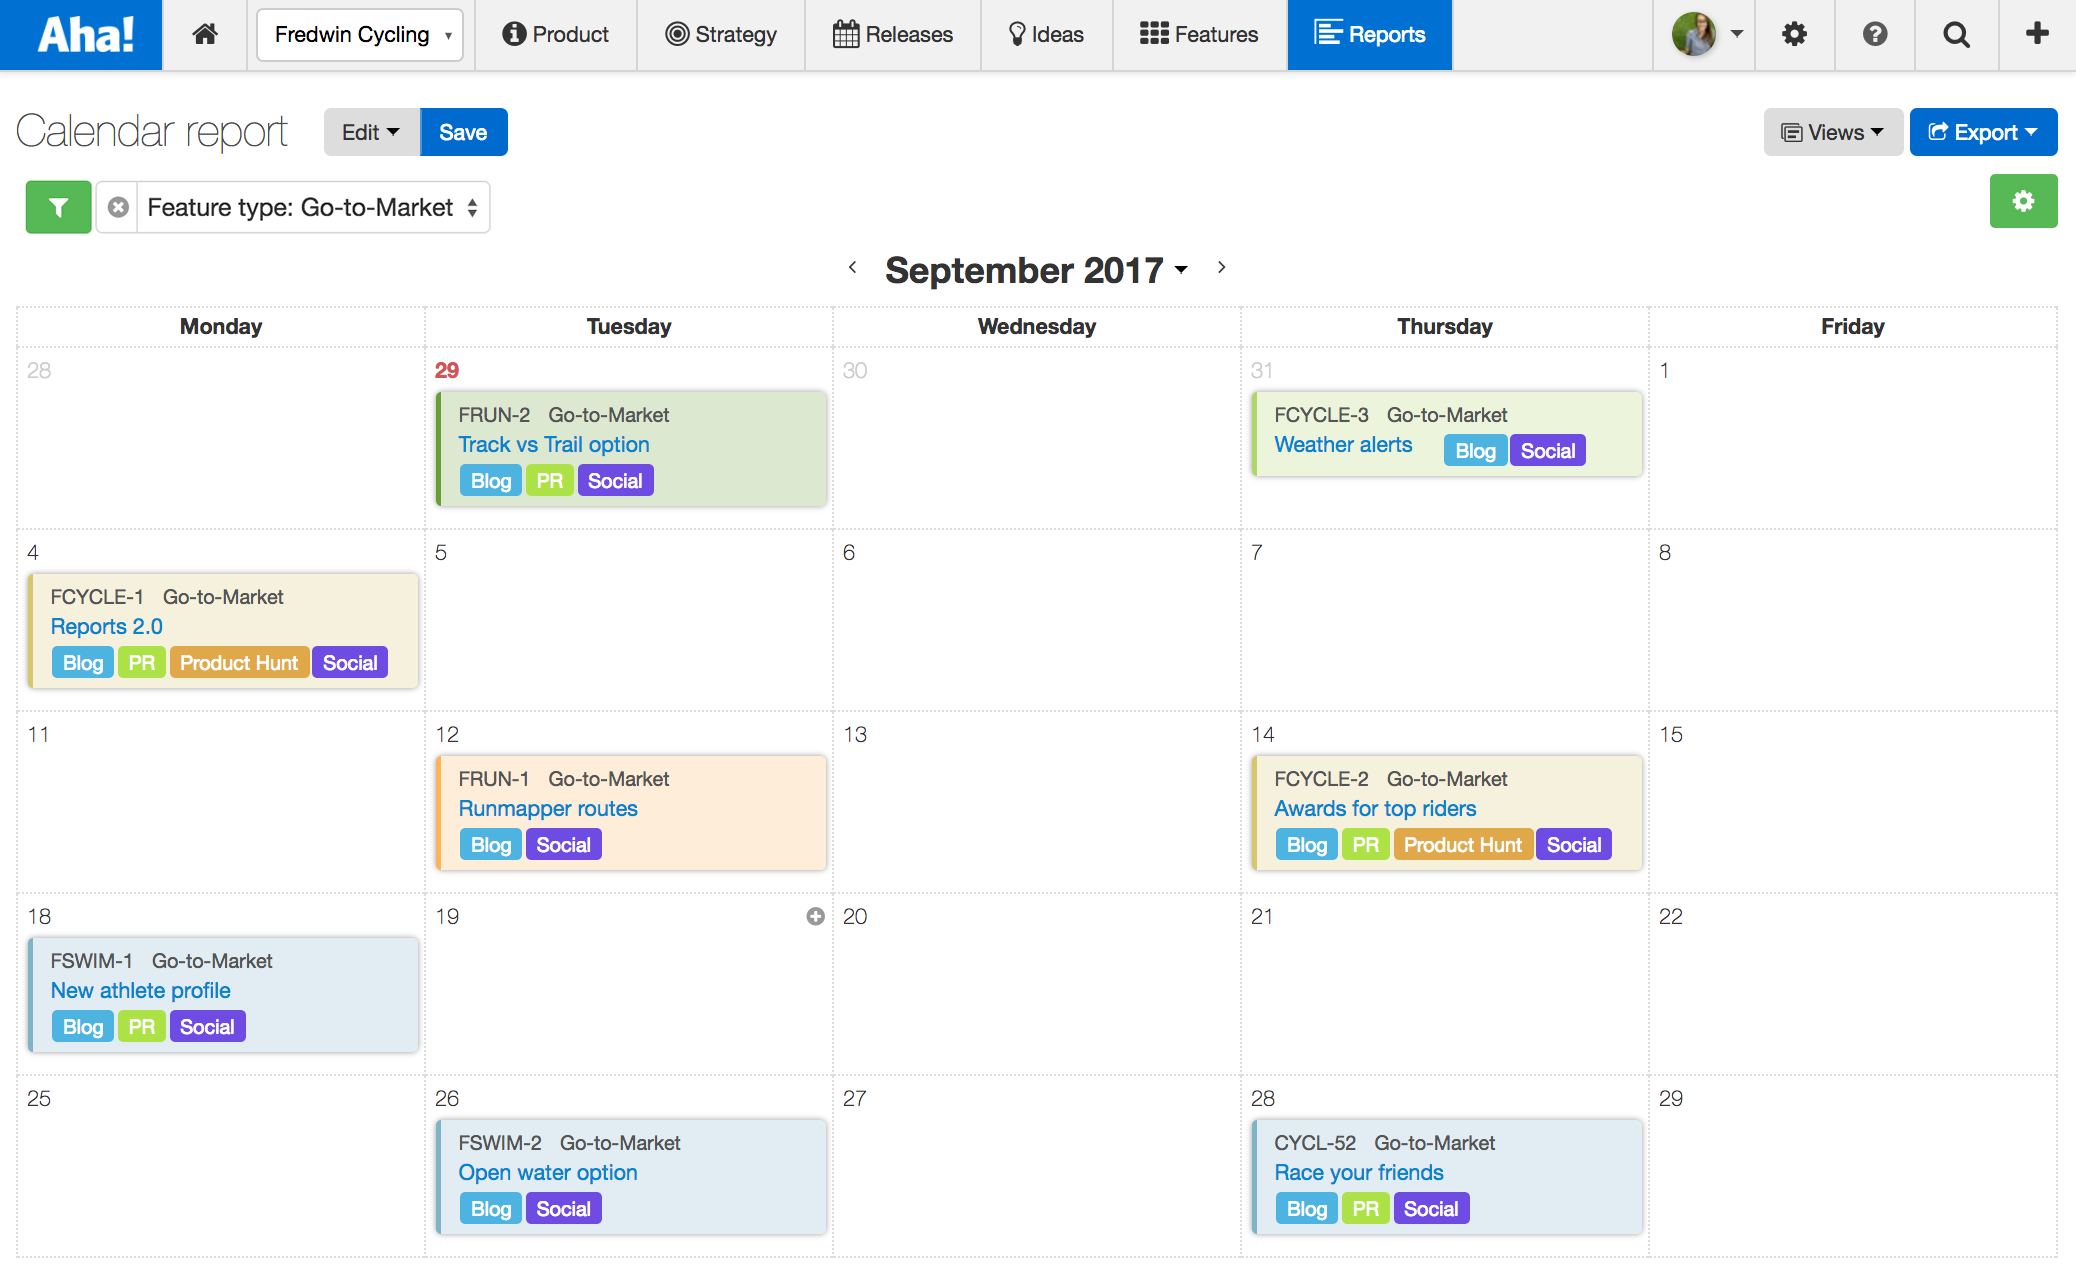 Visual Calendar Report For Product Marketing | Aha! Blog